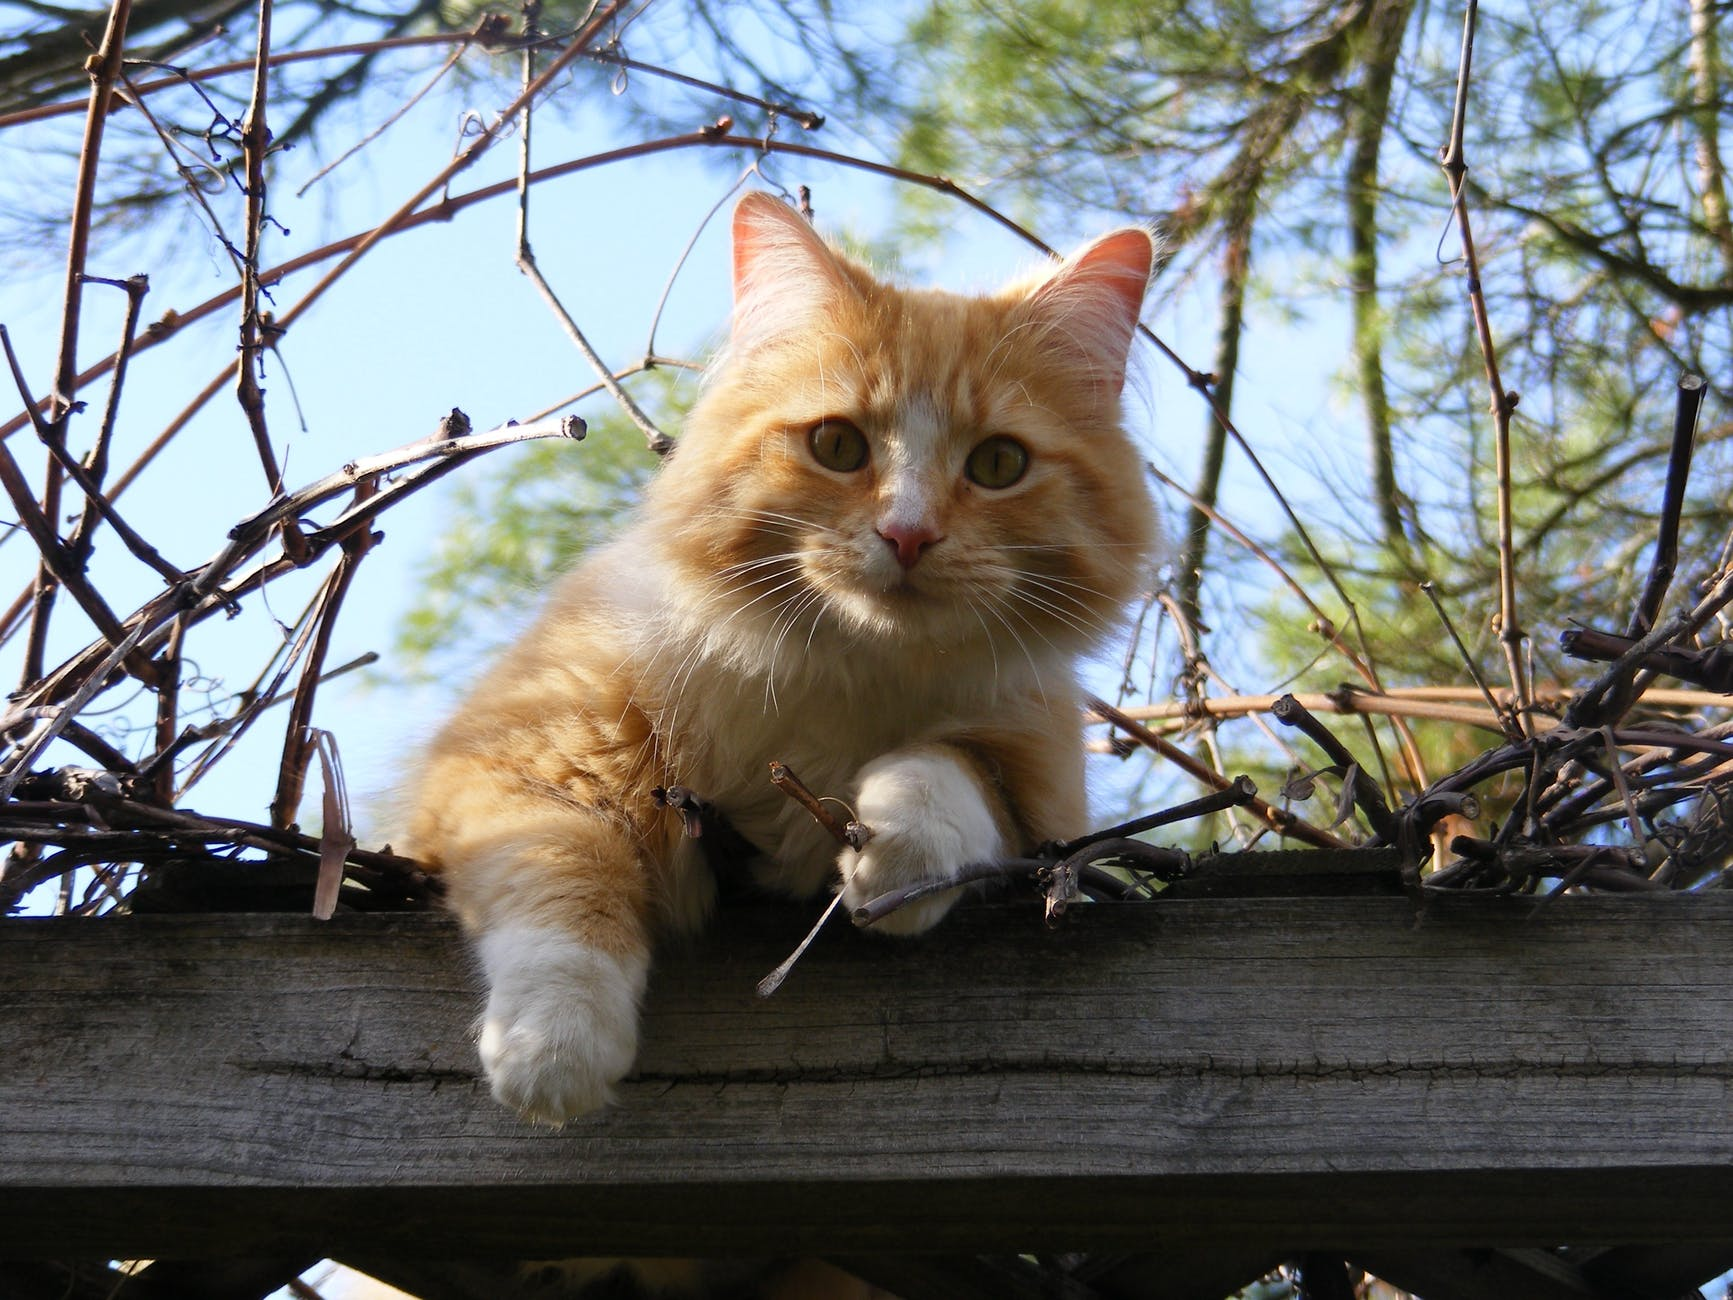 low angle portrait of cat on tree against sky